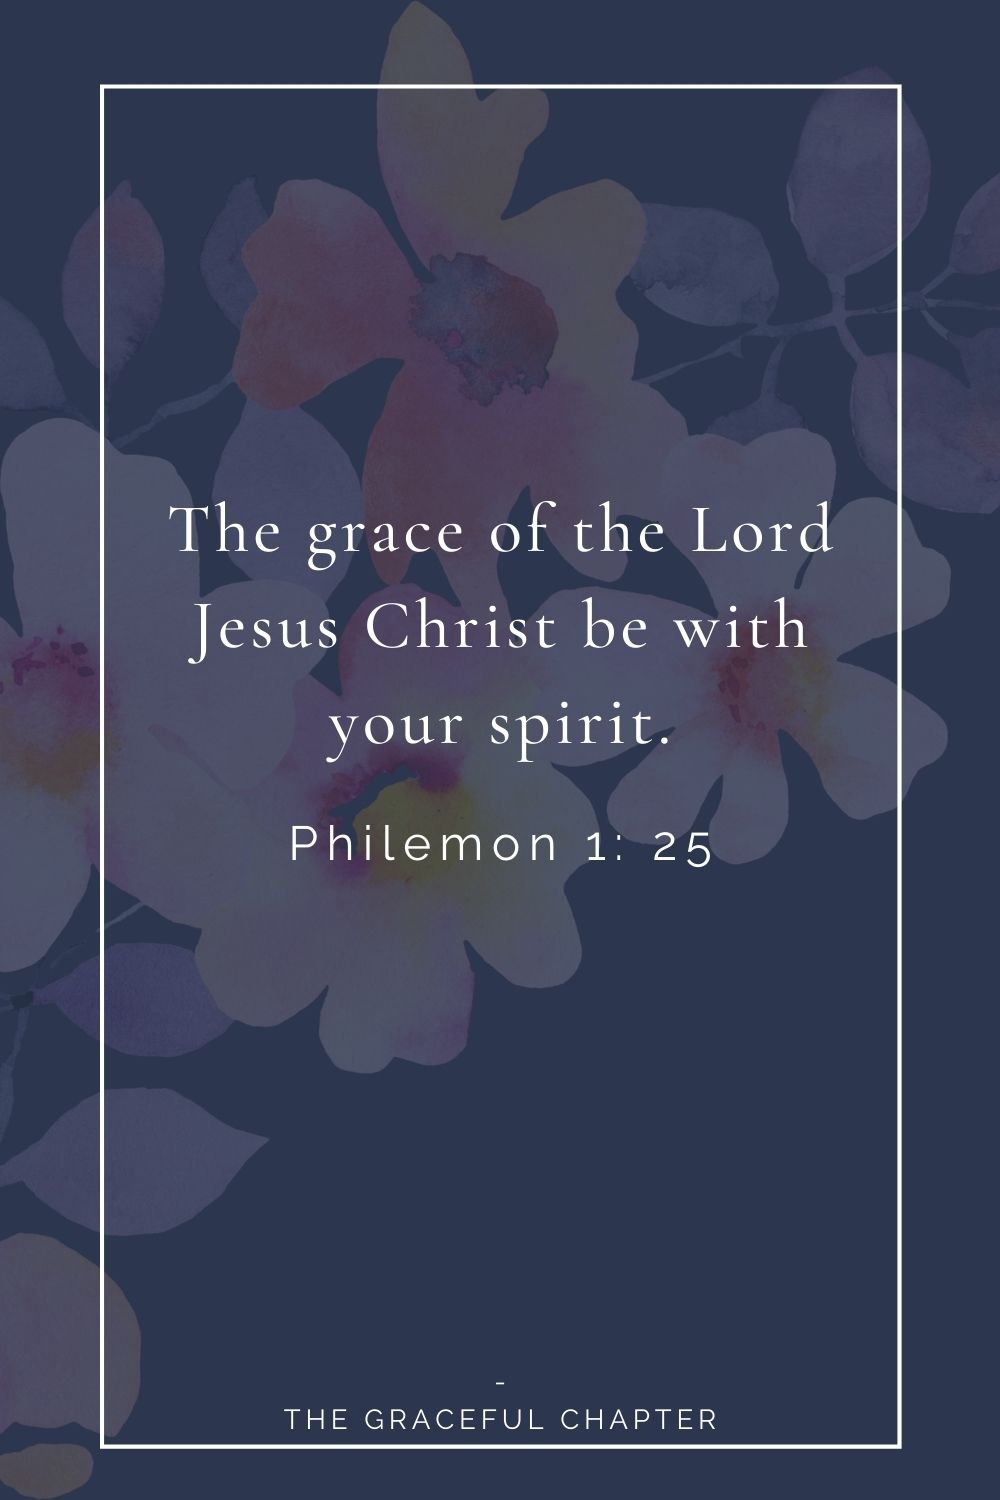 The grace of the Lord Jesus Christ be with your spirit. Philemon 1: 25